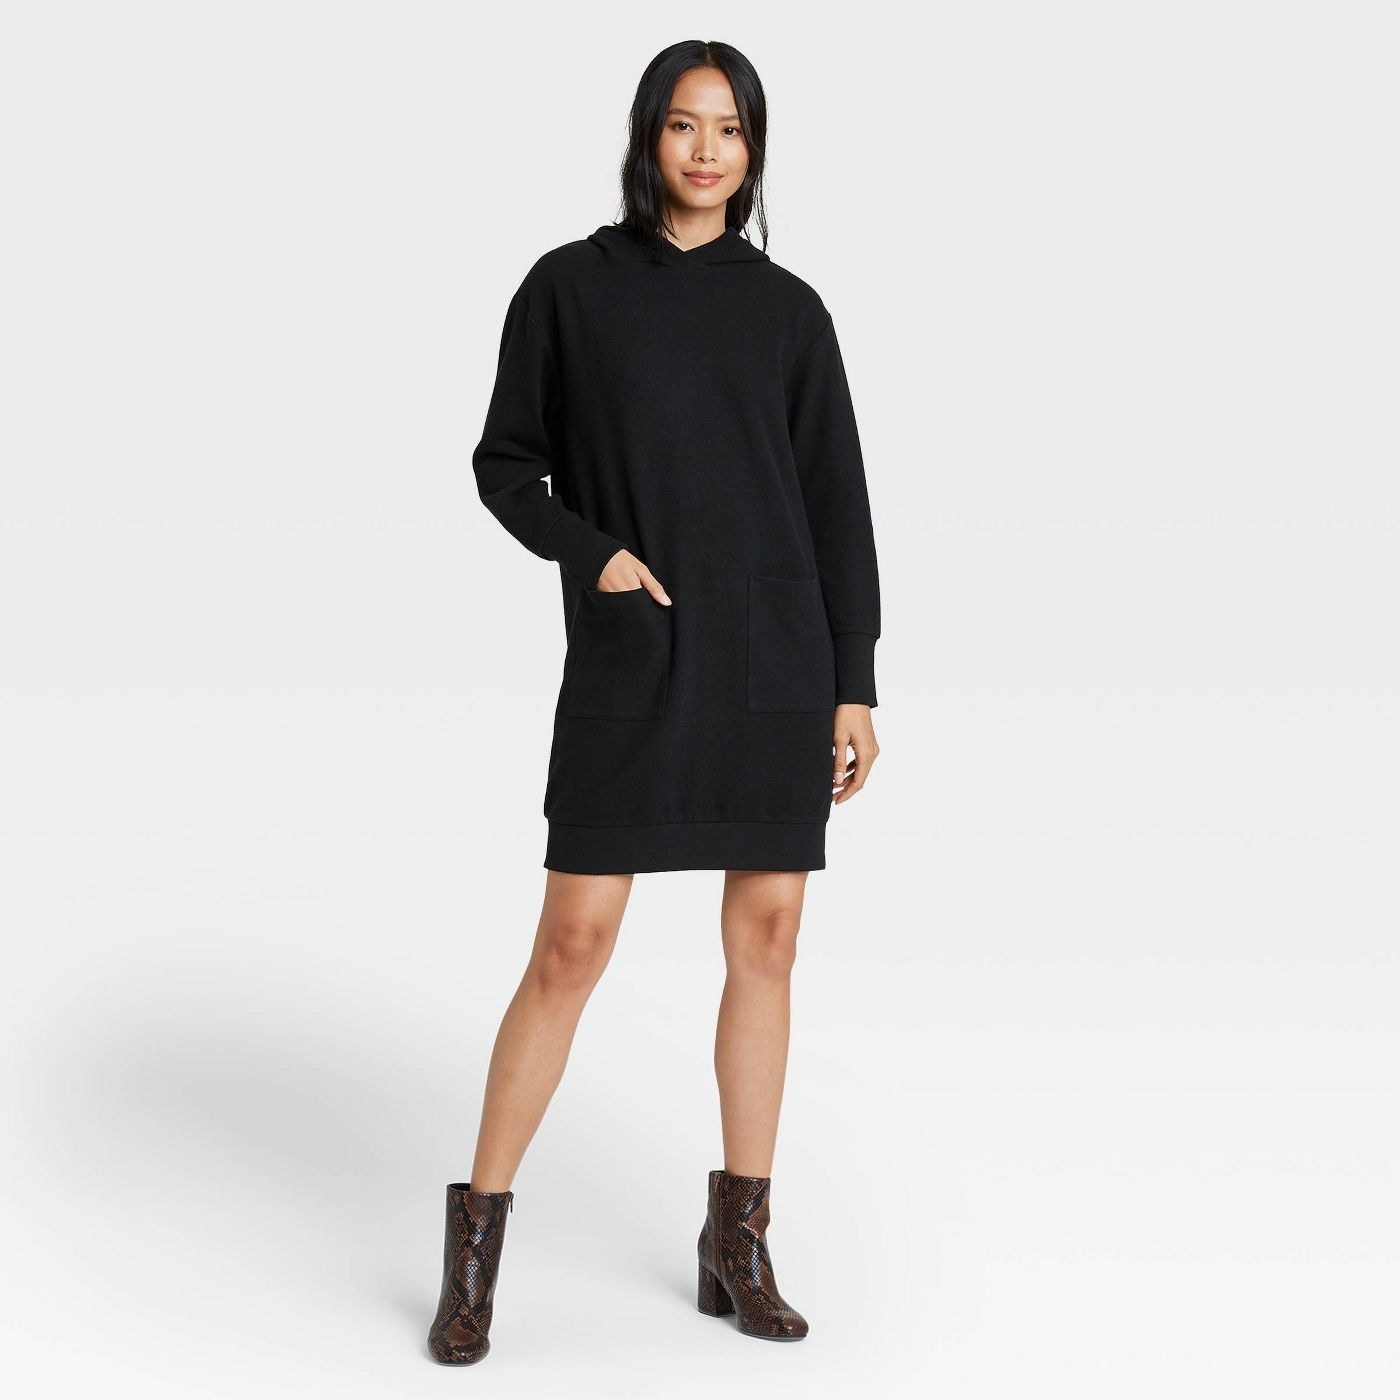 Model in black long sleeve sweater dress